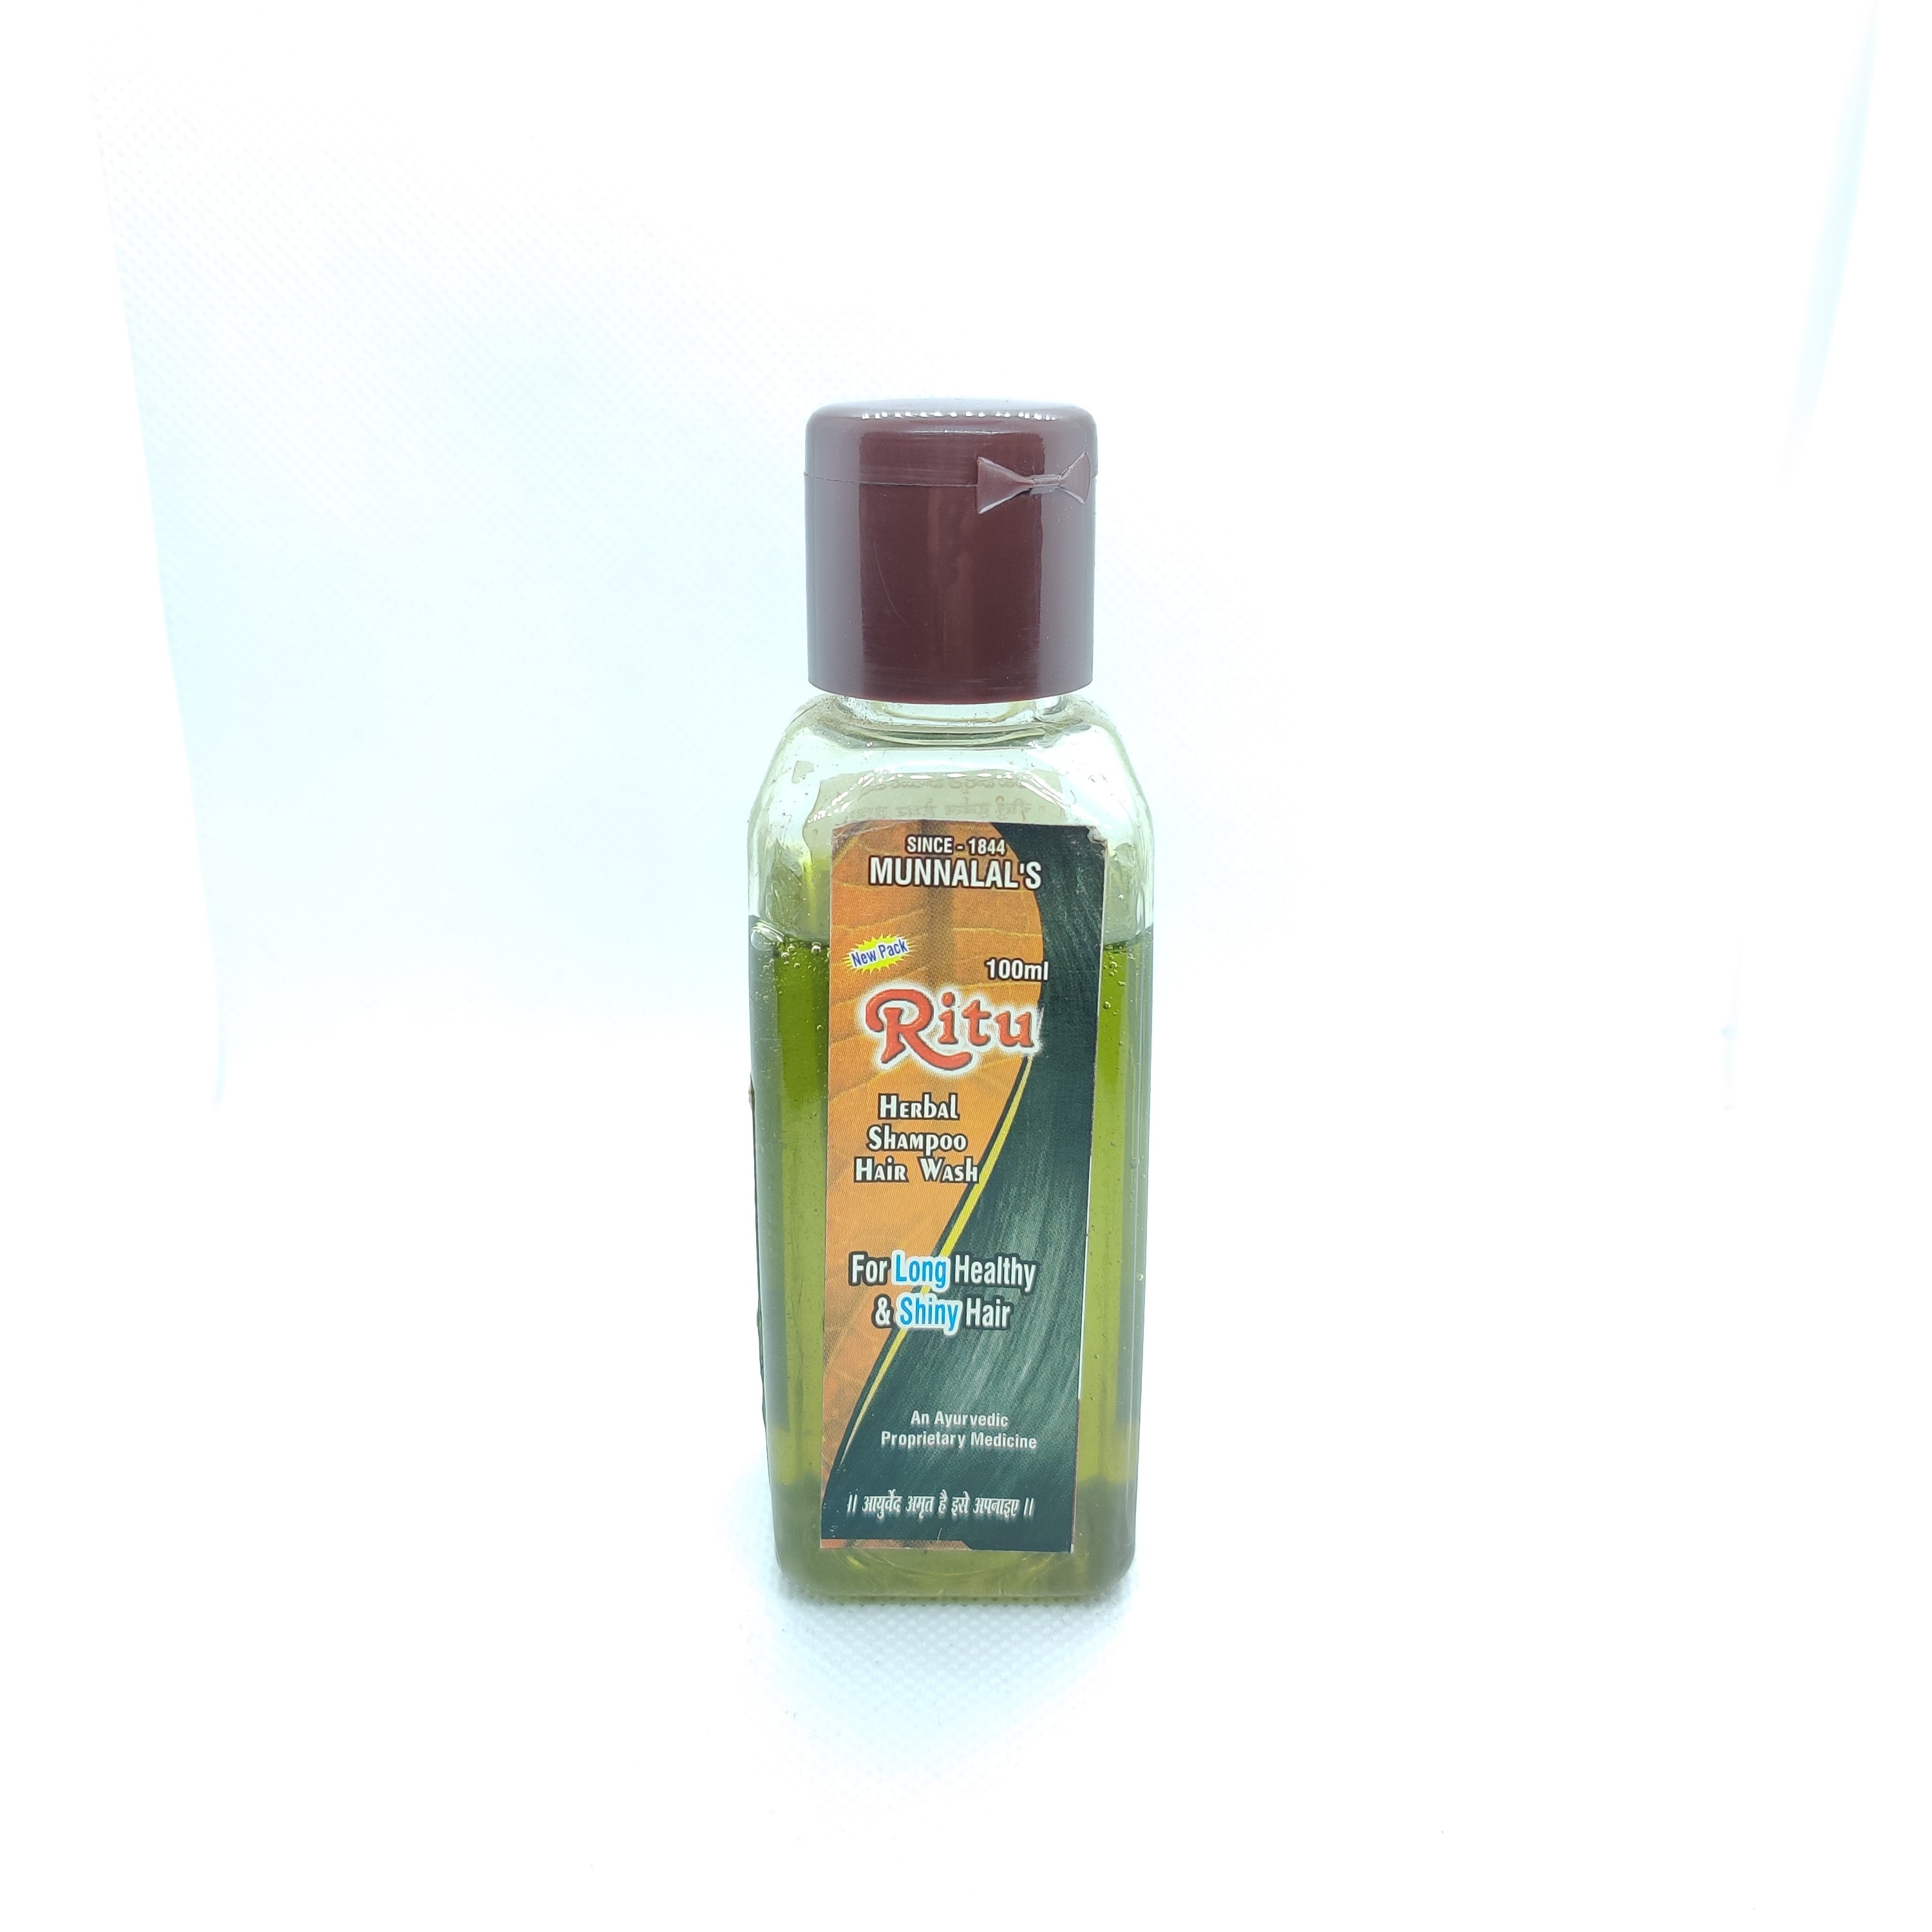 Ritu herbal shampoo